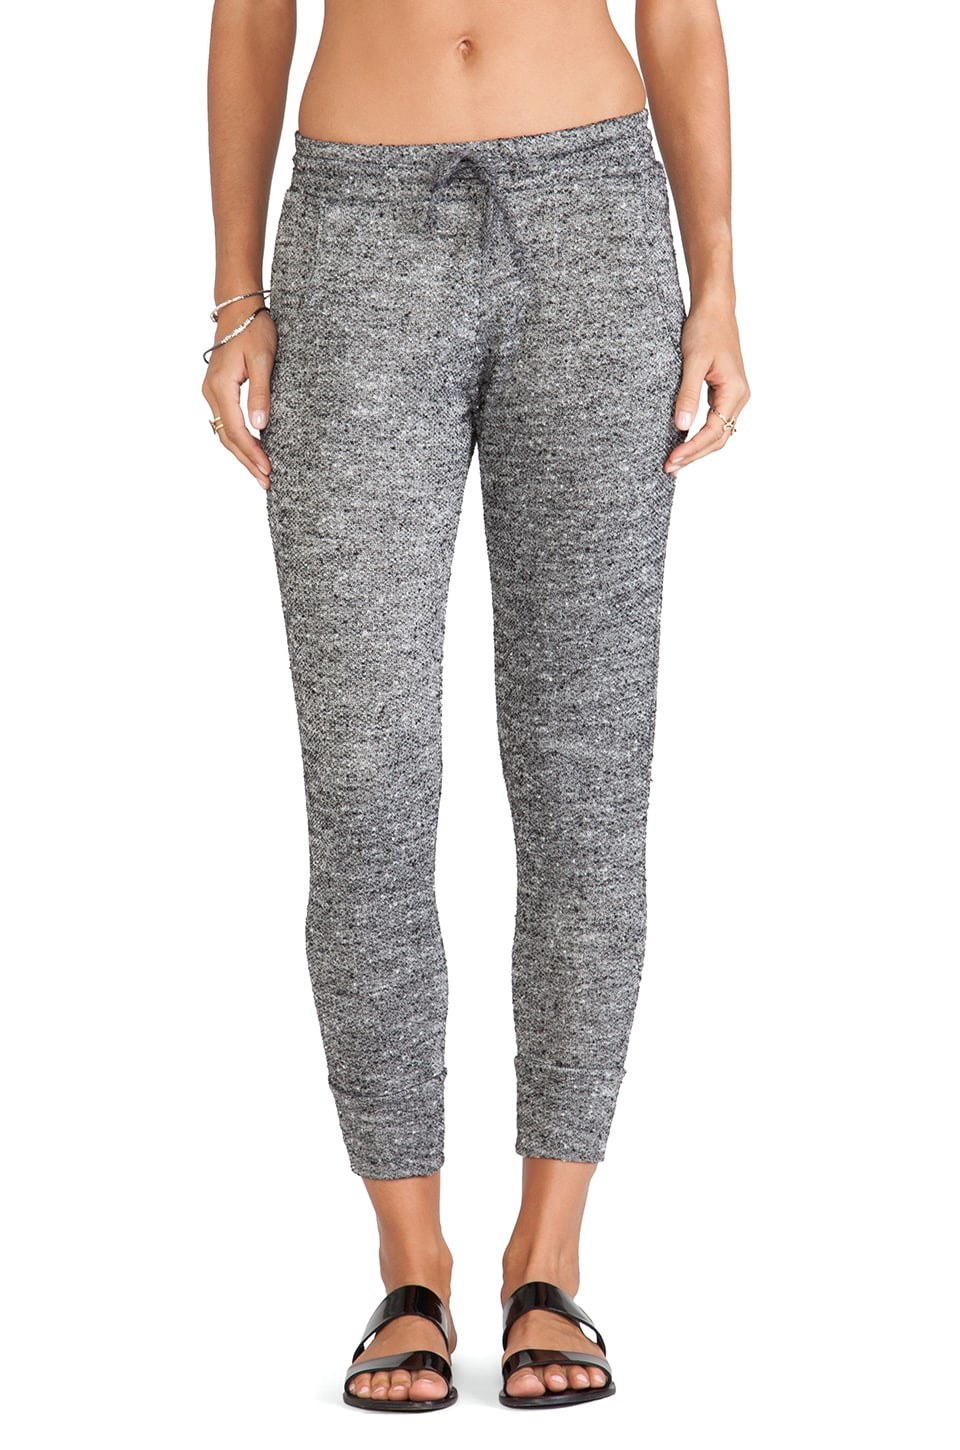 LNA Beach Sweatpant in Black Marble